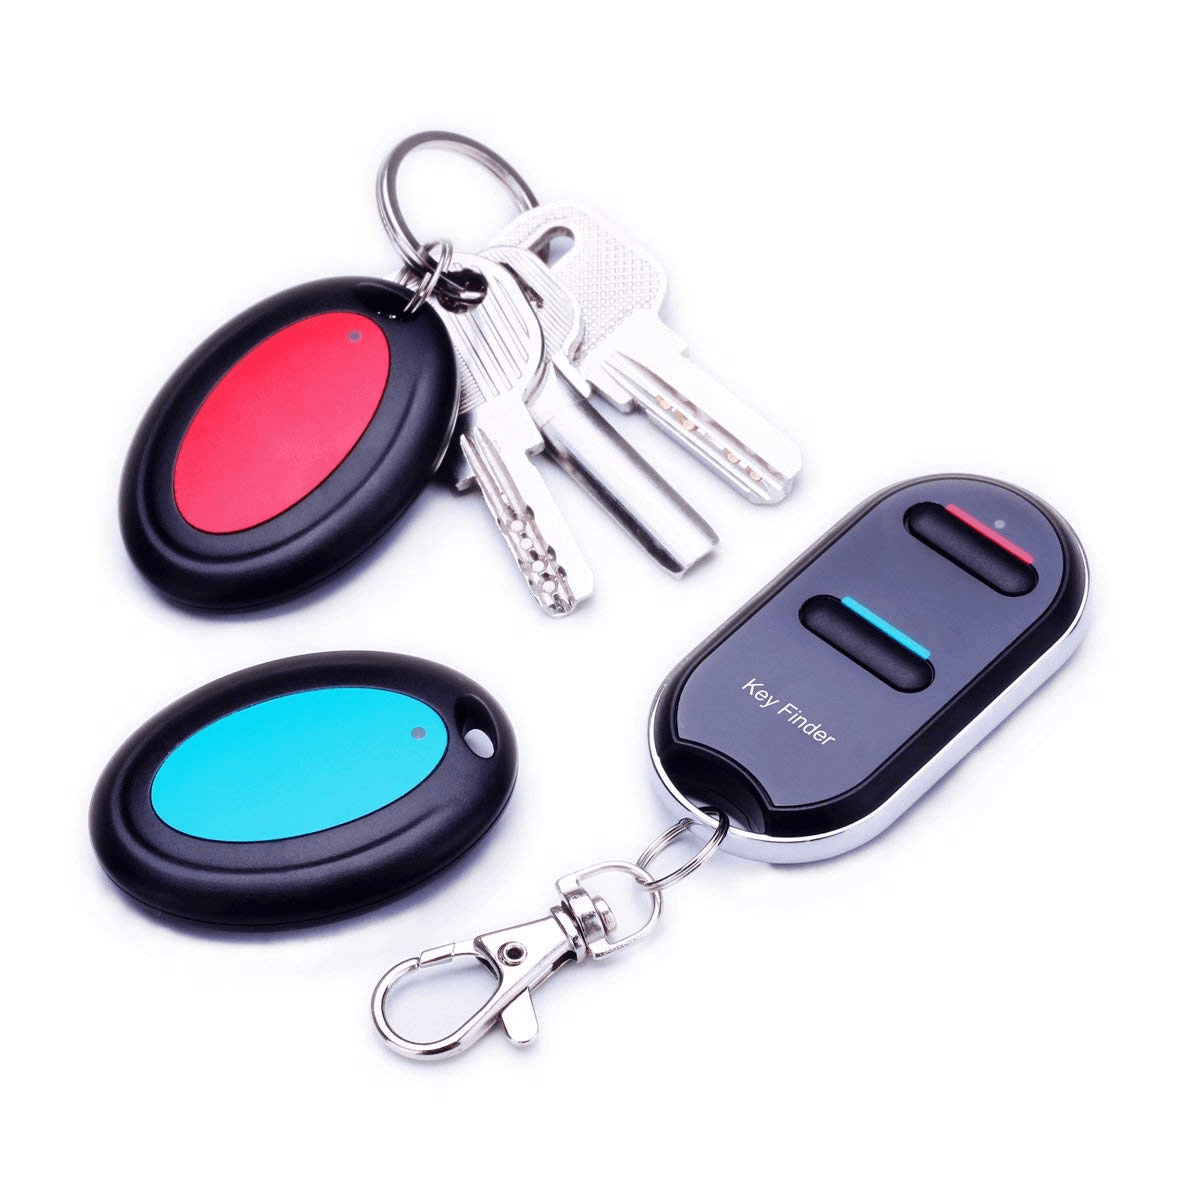 Whistle Key Finder Review